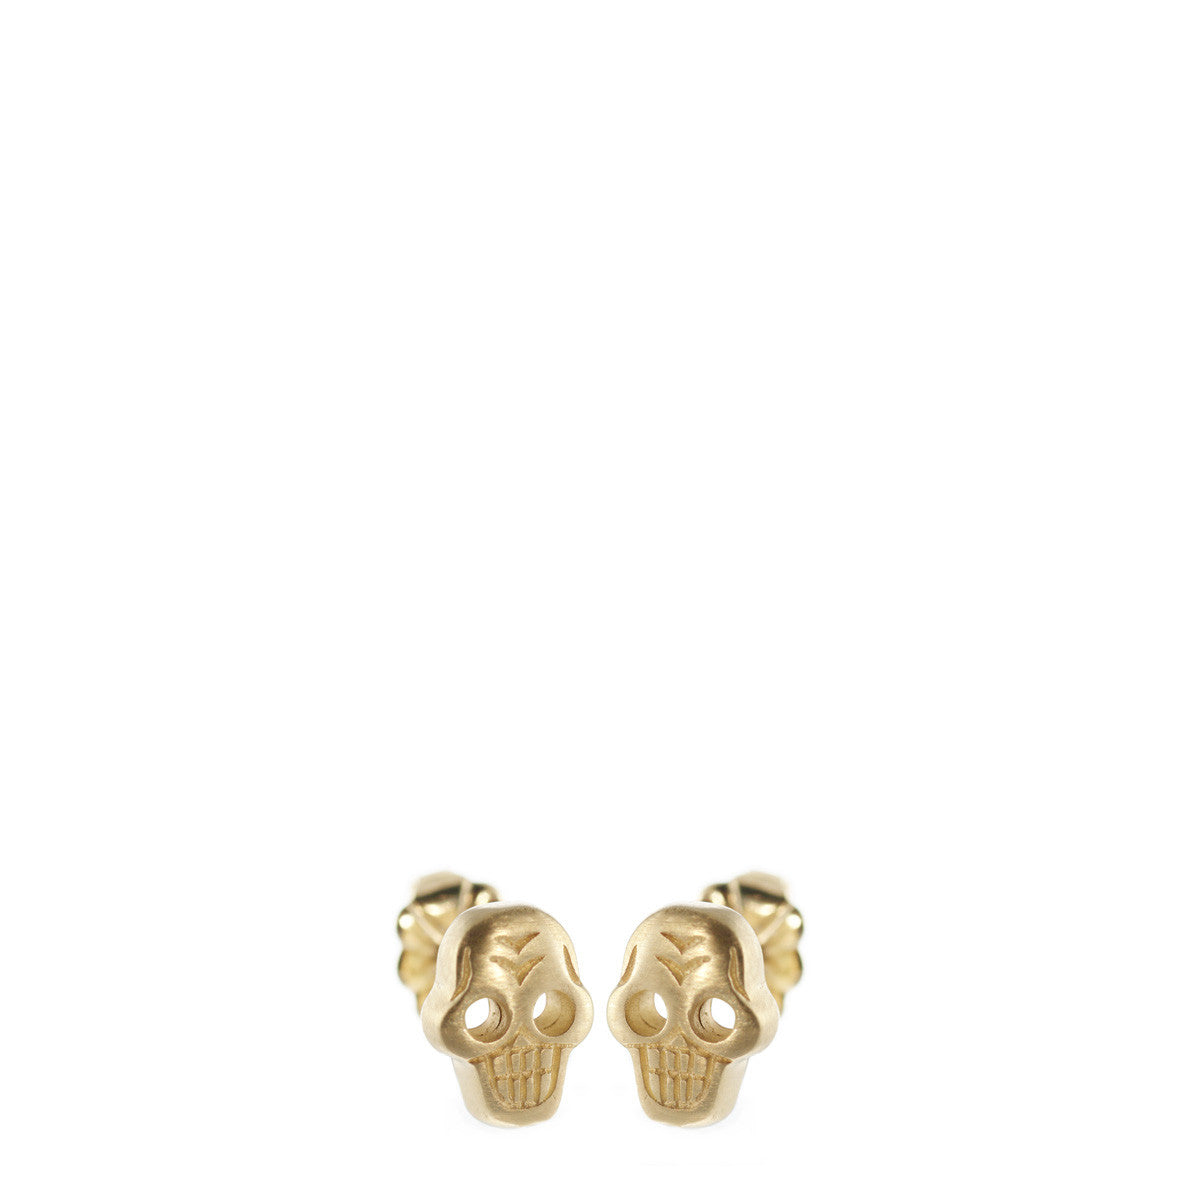 10K Gold Tiny Skull Stud Earrings